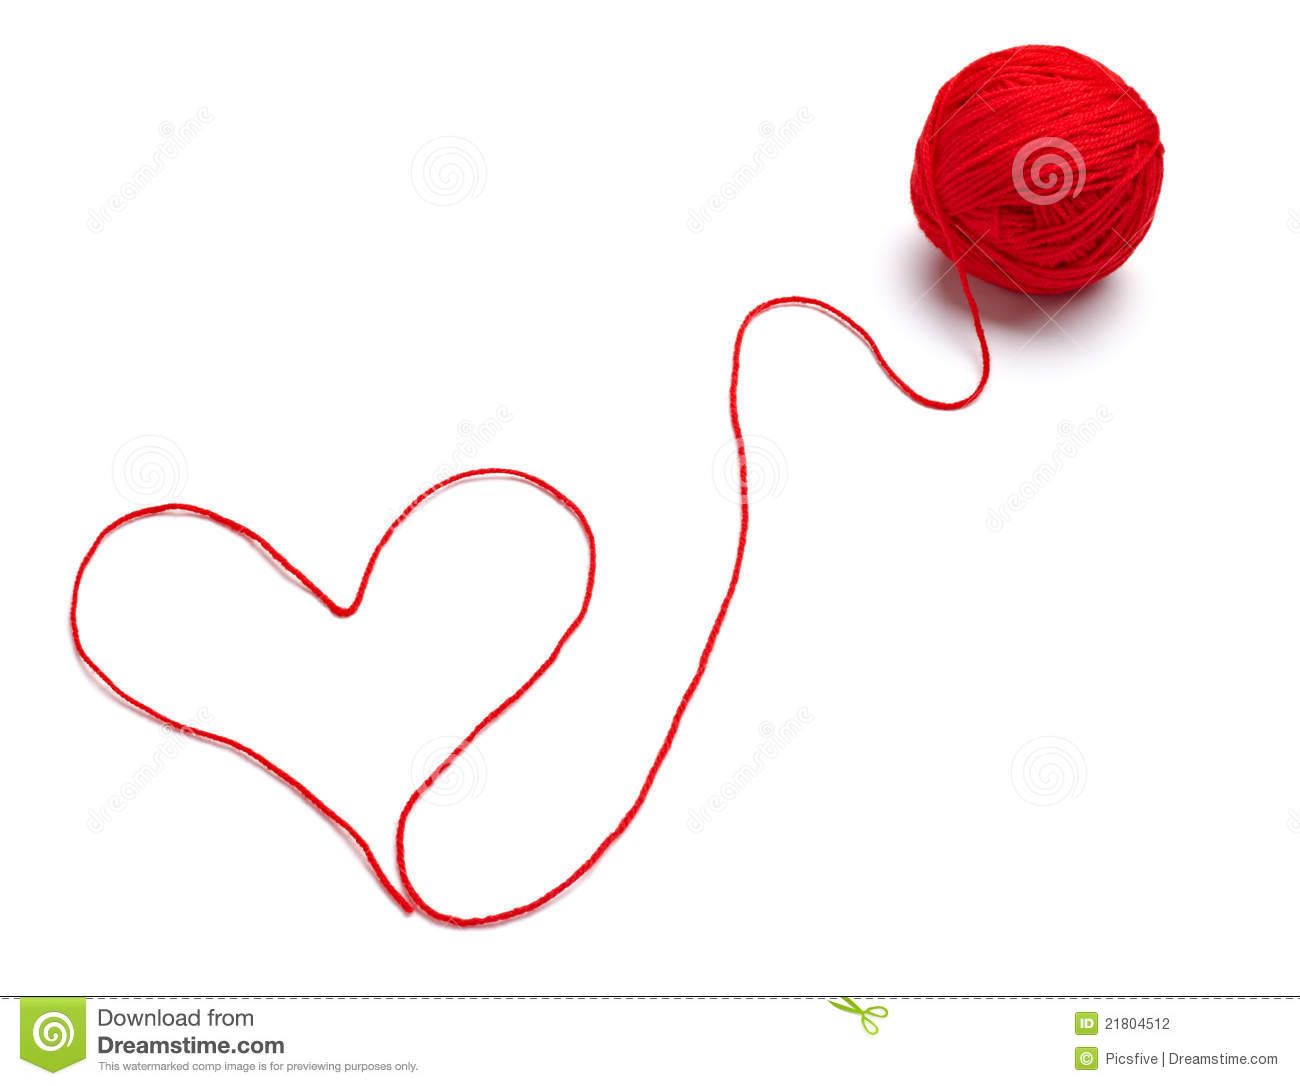 Knitting Pattern For A Heart Shape : Wool Knitting Heart Shape Stock Photography - Image: 21804512